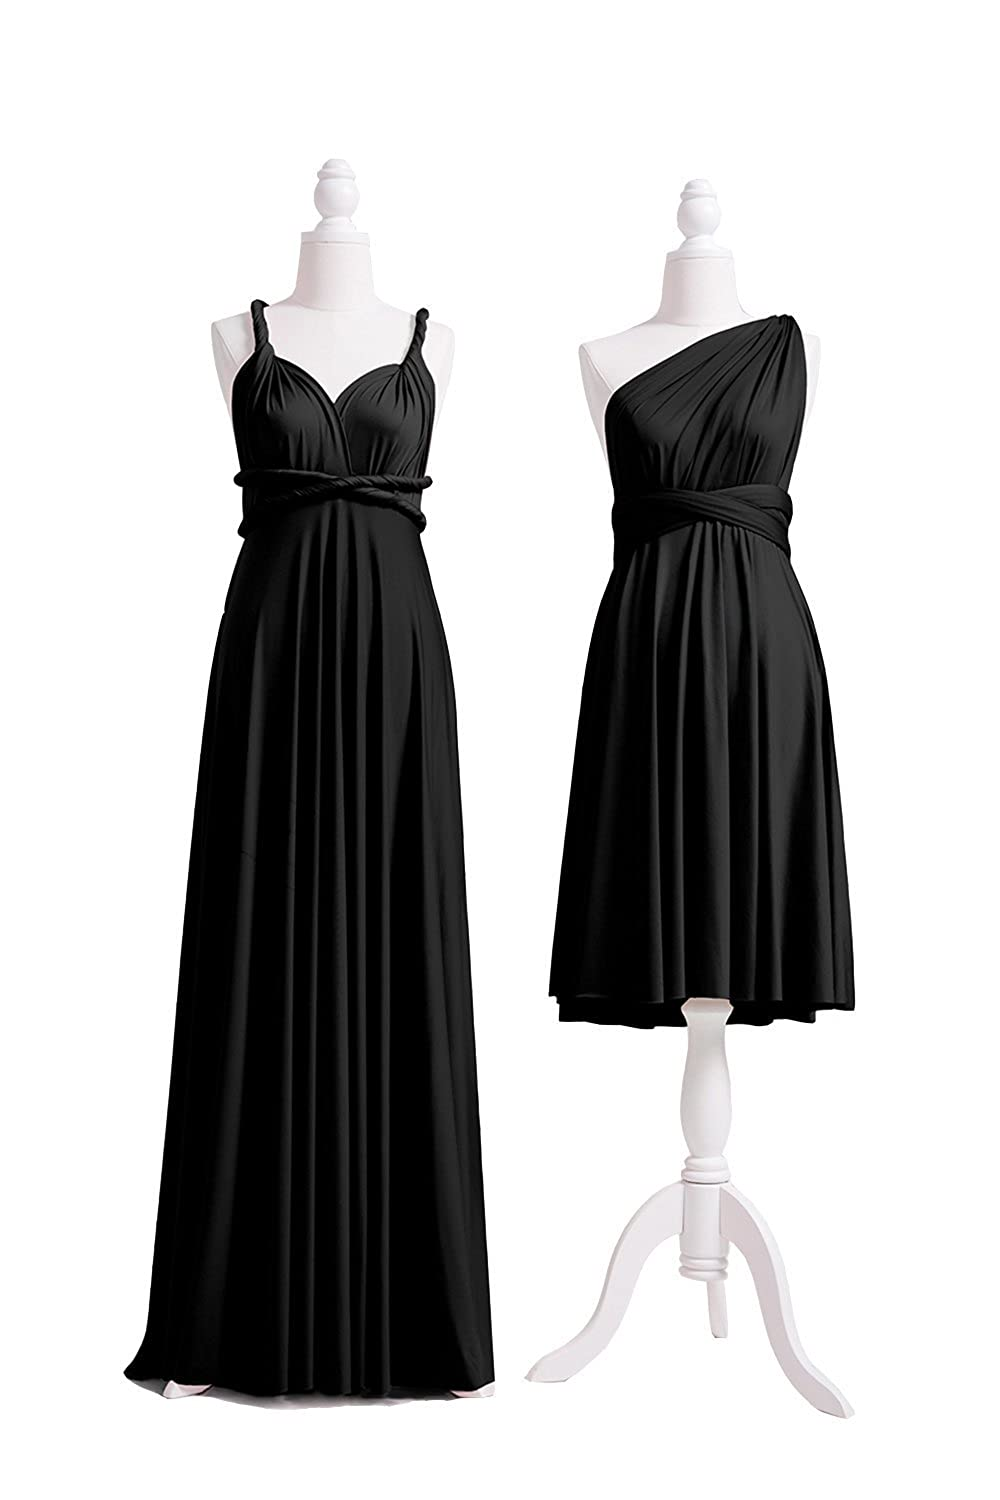 216ed5d3377 Top 10 wholesale Plus Size Maternity Canada - Chinabrands.com